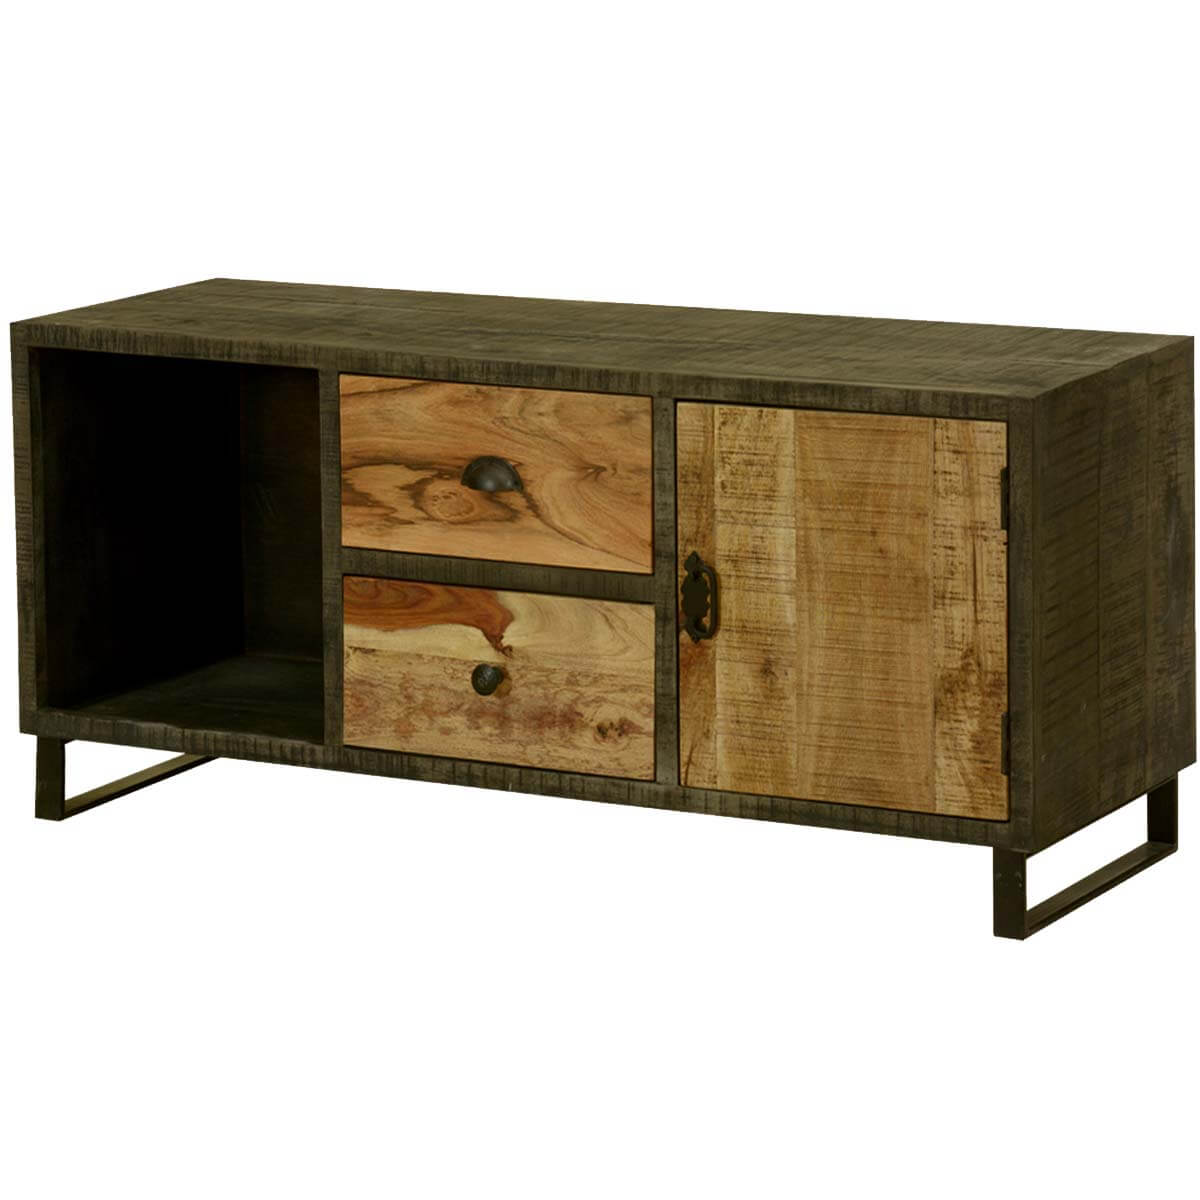 Allison Wooden Patches Rustic Mango Wood TV Stand Media Console